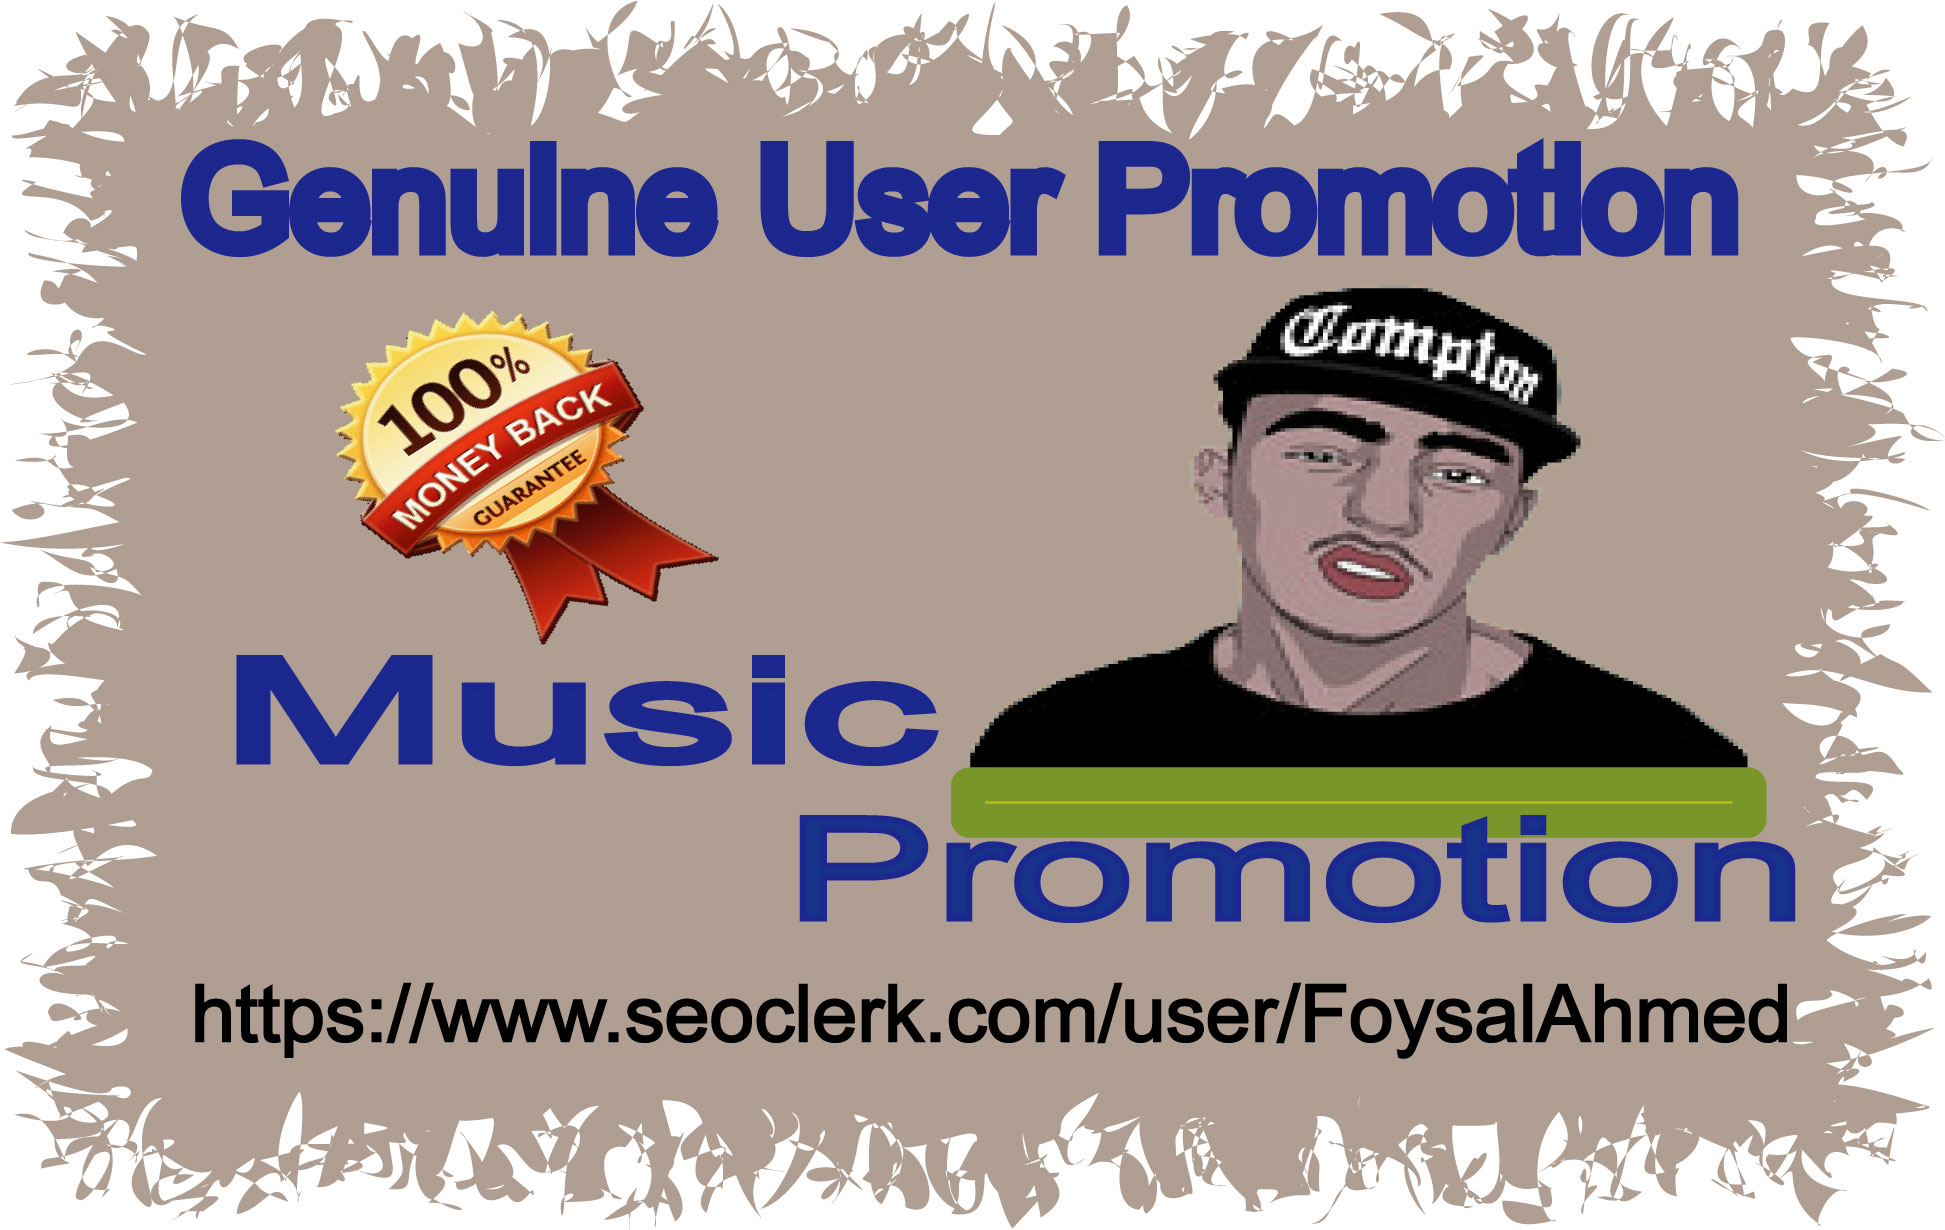 Music Promotion 10K Music Play & 10 L1kes & 10 Re-post Delivery within 1 day